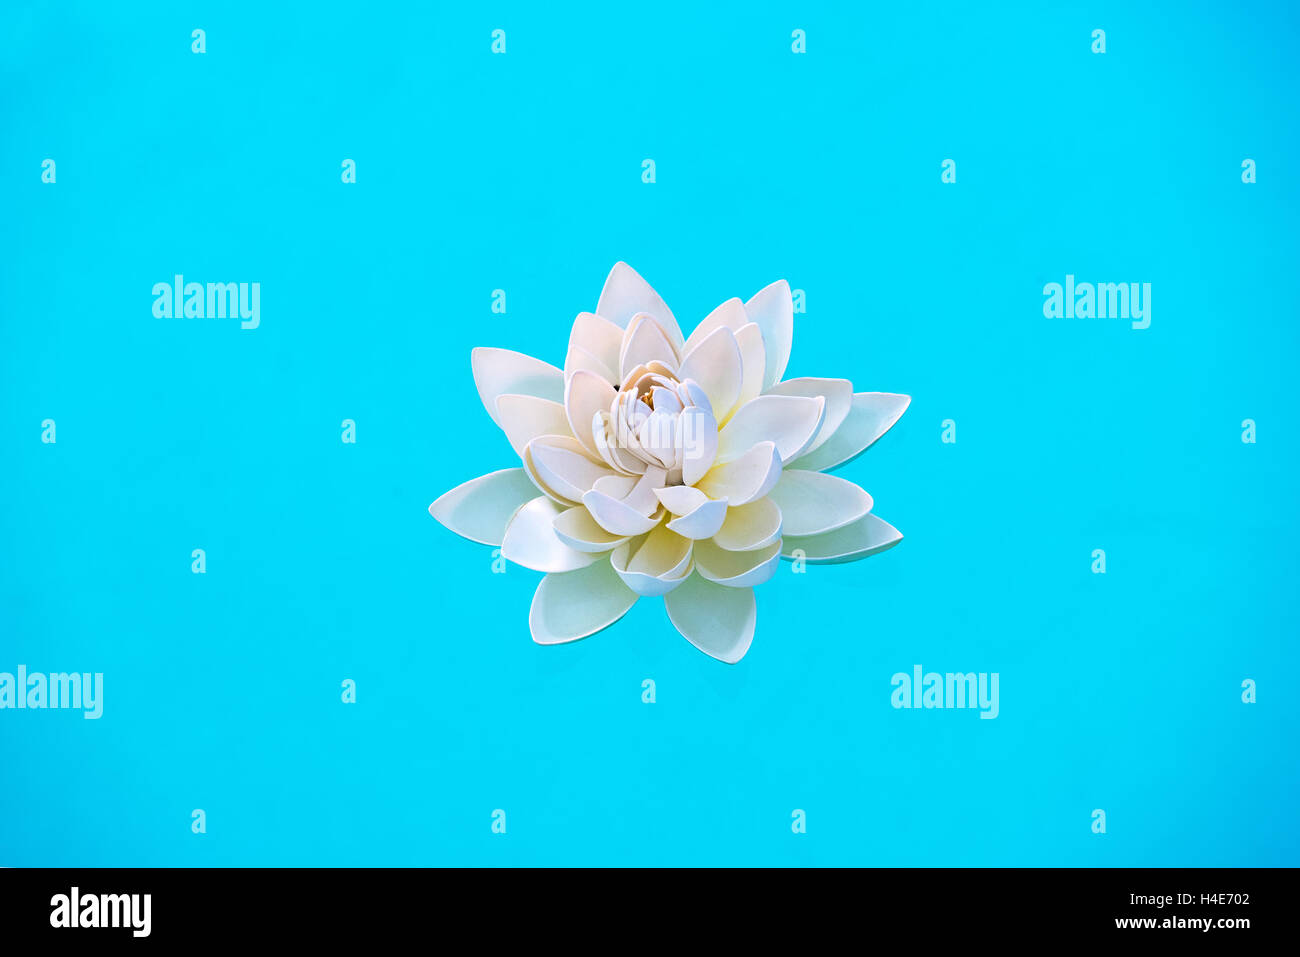 Single white water lily flower, Nymphaea, floating on fresh clear blue water in a concept of wellness or a spa - Stock Image